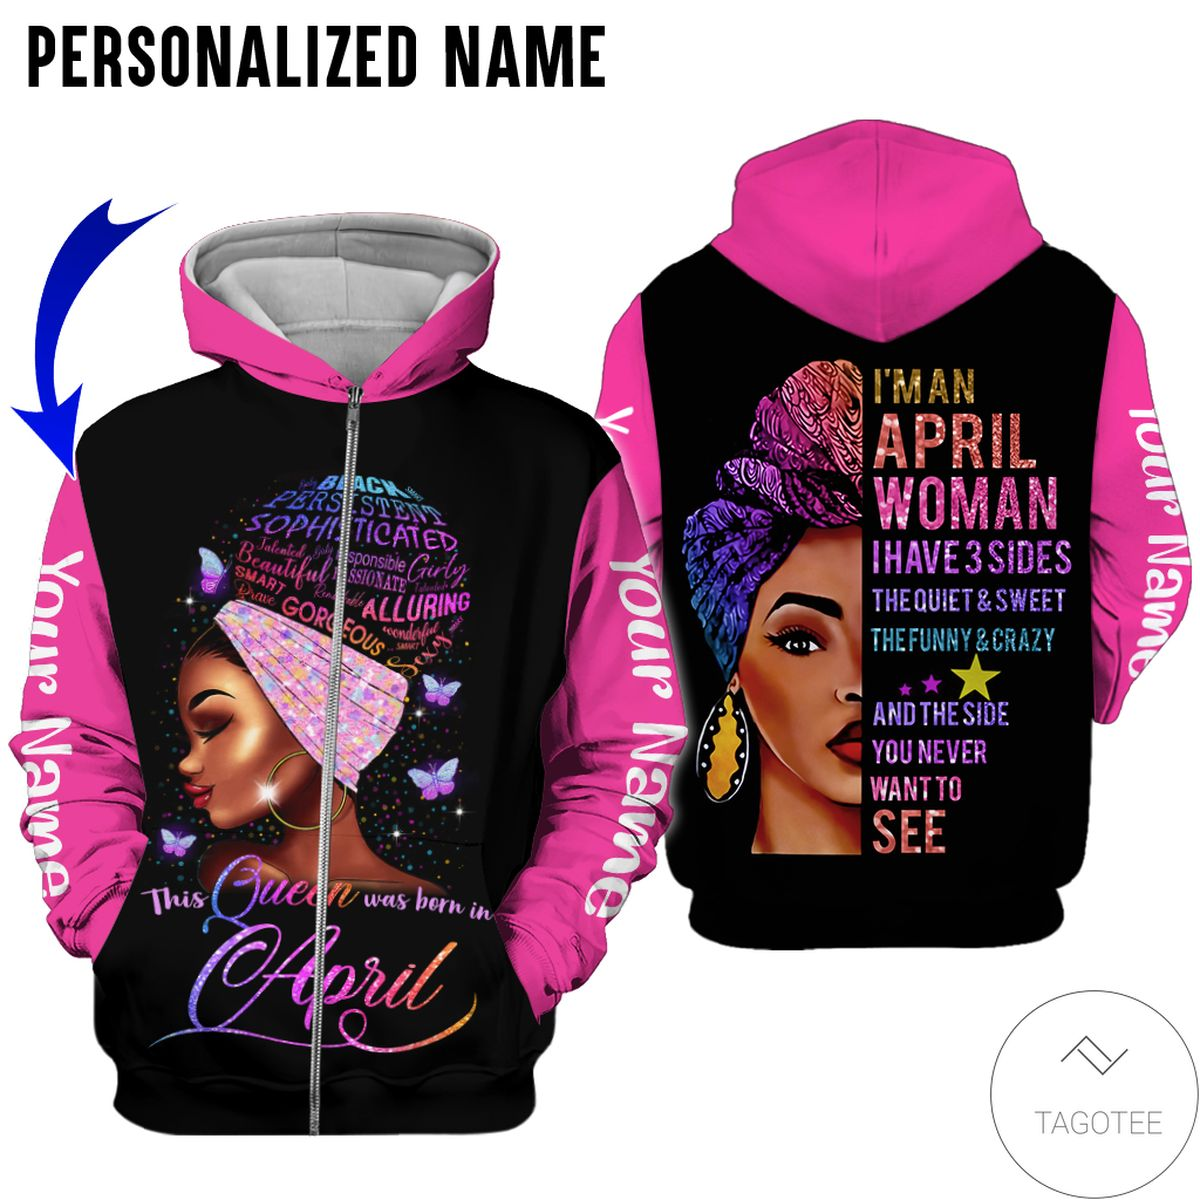 Popular Personalized Name This Queen Was Born In April All Over Print Hoodie